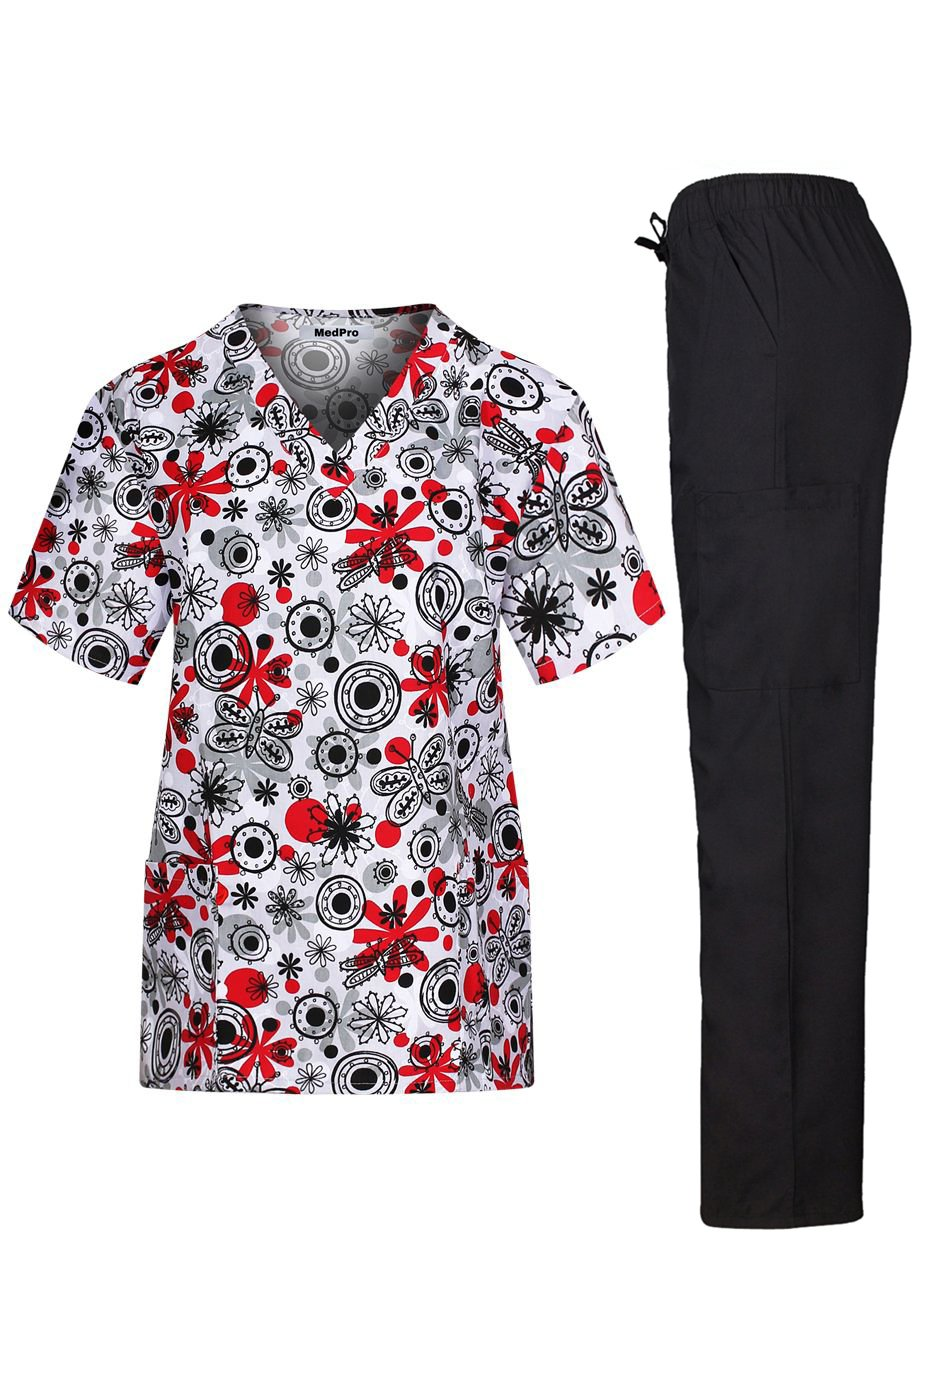 MedPro Women's Medical Scrub Set with V Neck Top and Cargo Pants Black Red XS by MedPro (Image #1)